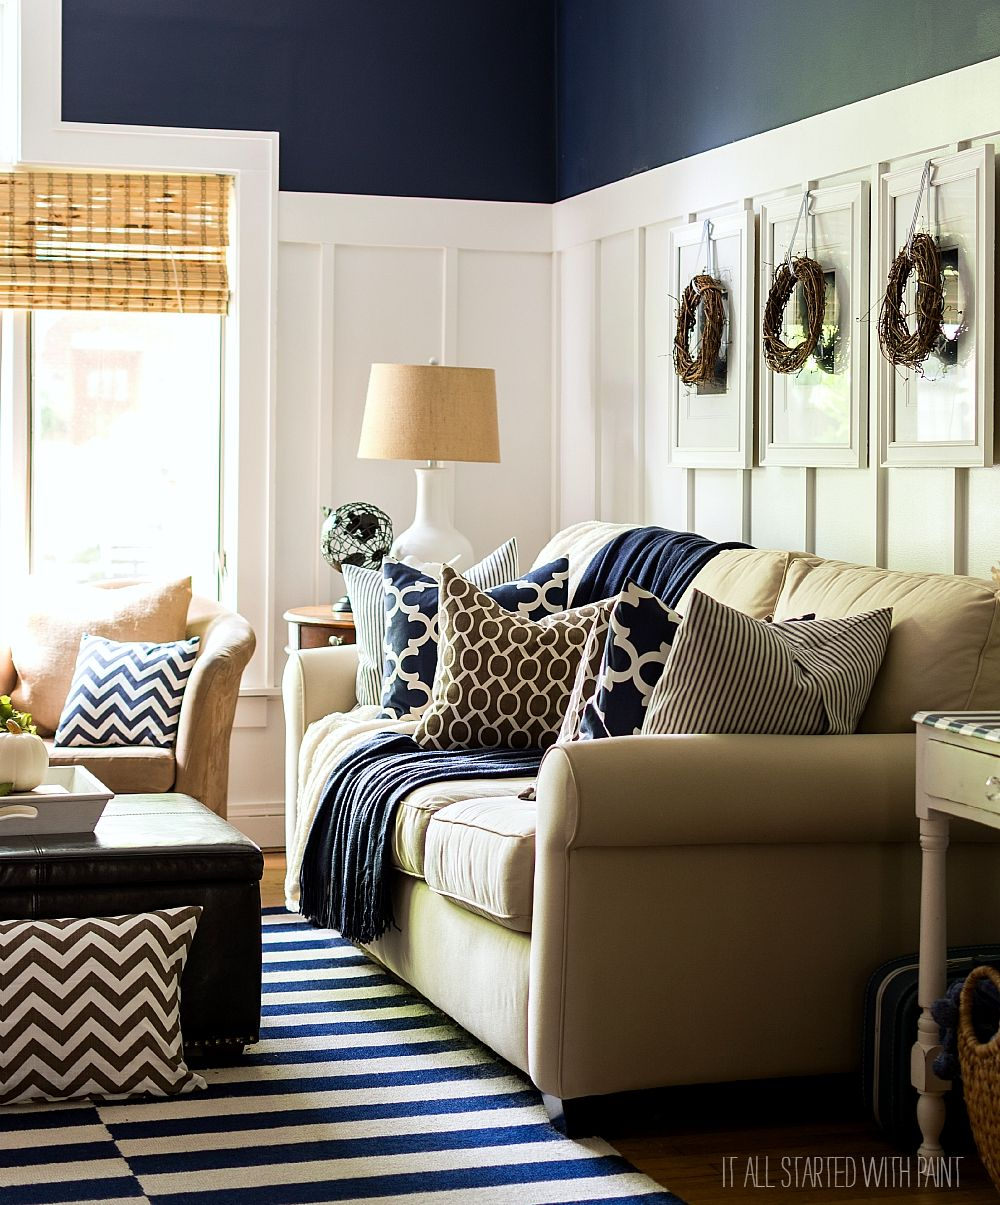 Best 25 Navy Bedrooms Ideas On Pinterest: Fall Decor In Navy And Blue